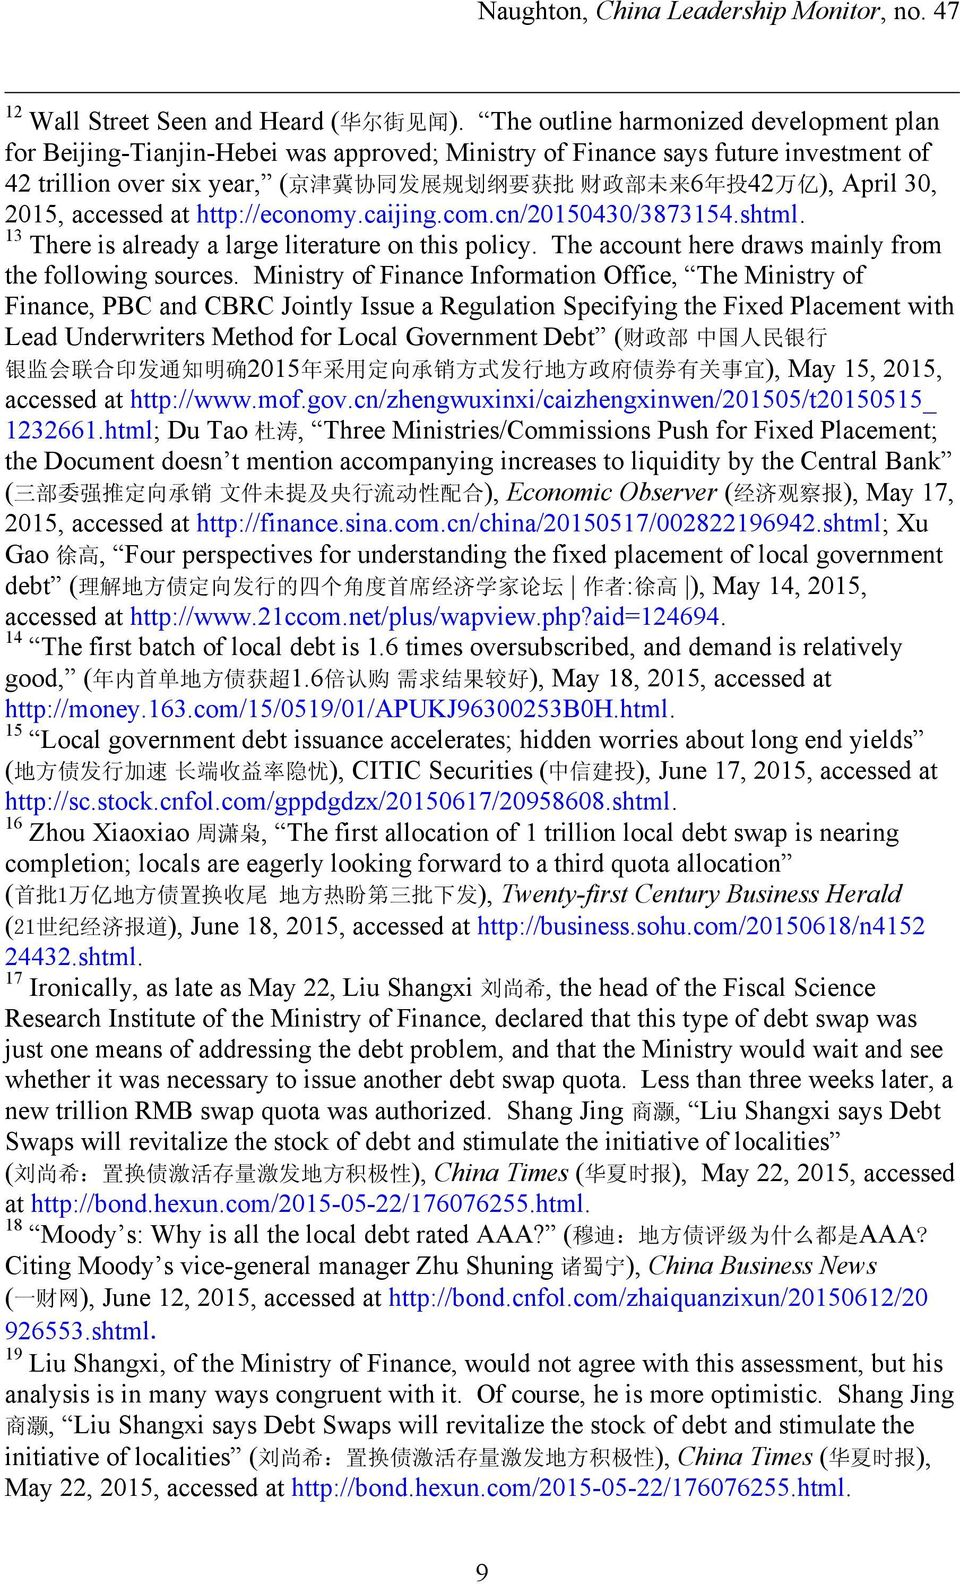 http://economy.caijing.com.cn/20150430/3873154.shtml. 13 There is already a large literature on this policy. The account here draws mainly from the following sources.